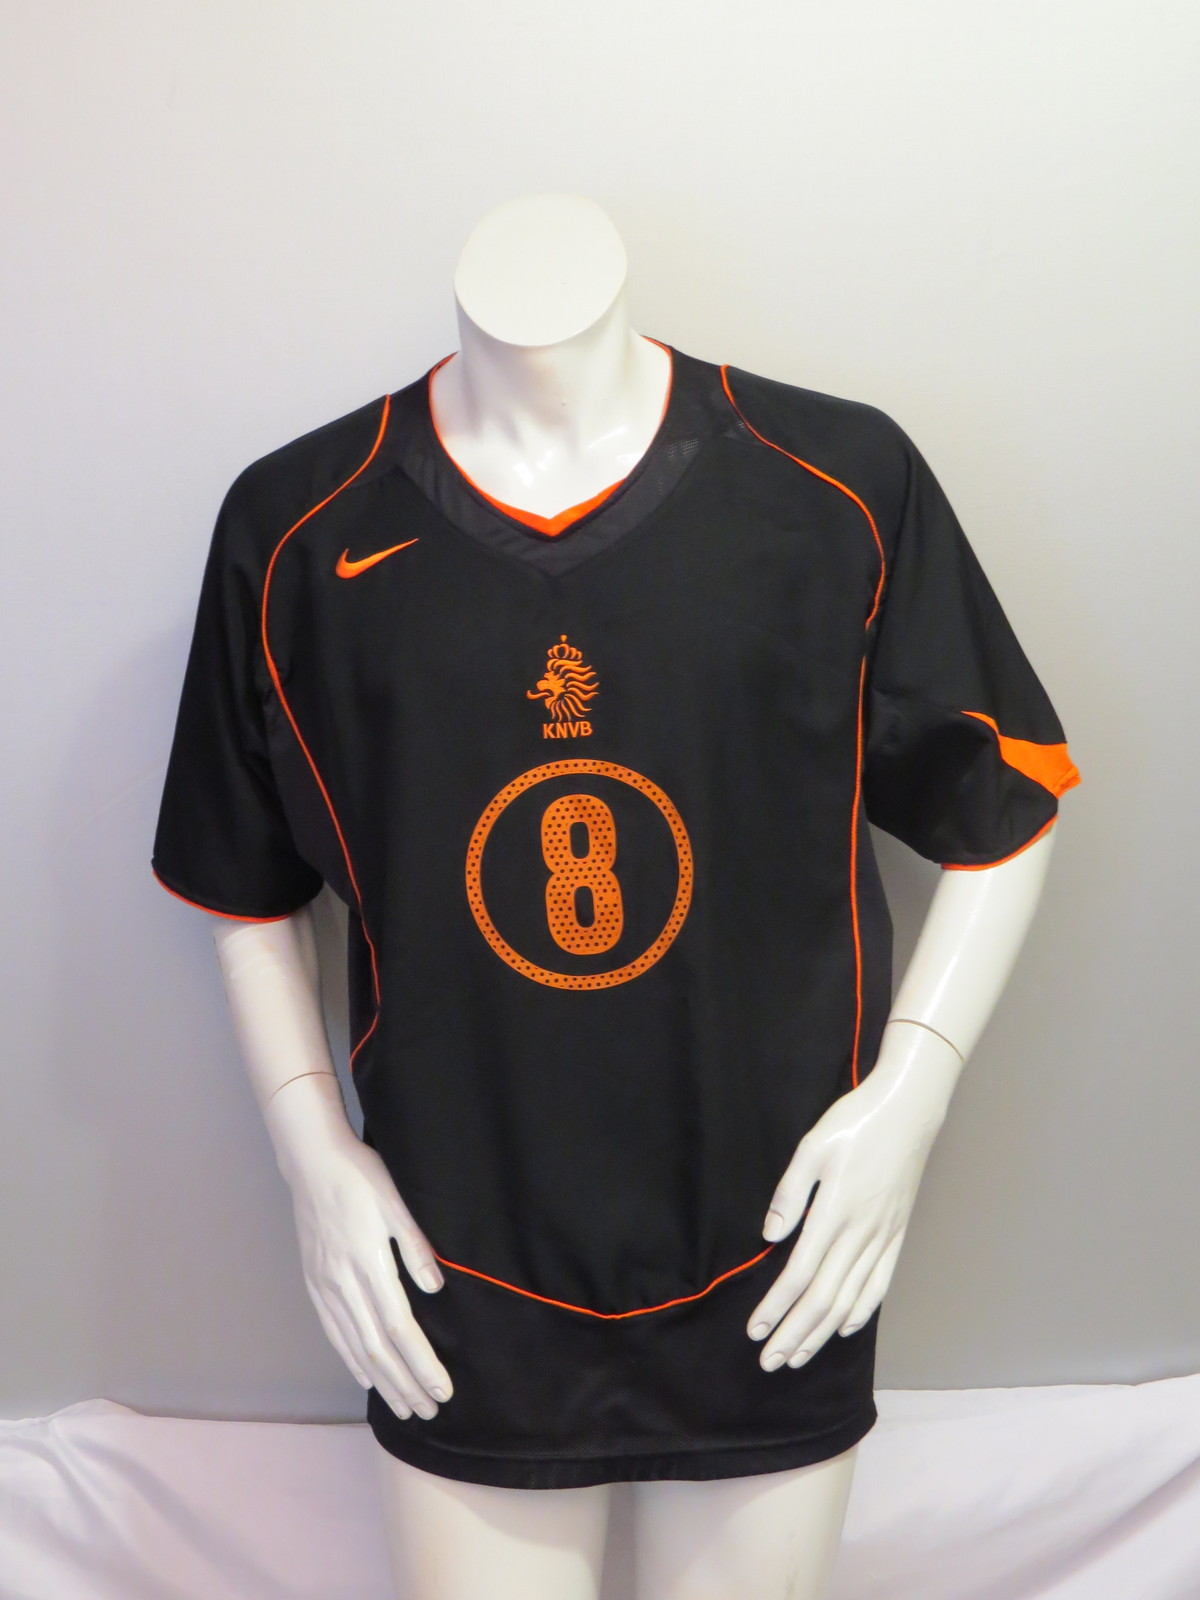 New Team Netherlands Soccer Jersey 2006 Away and 50 similar items  free shipping